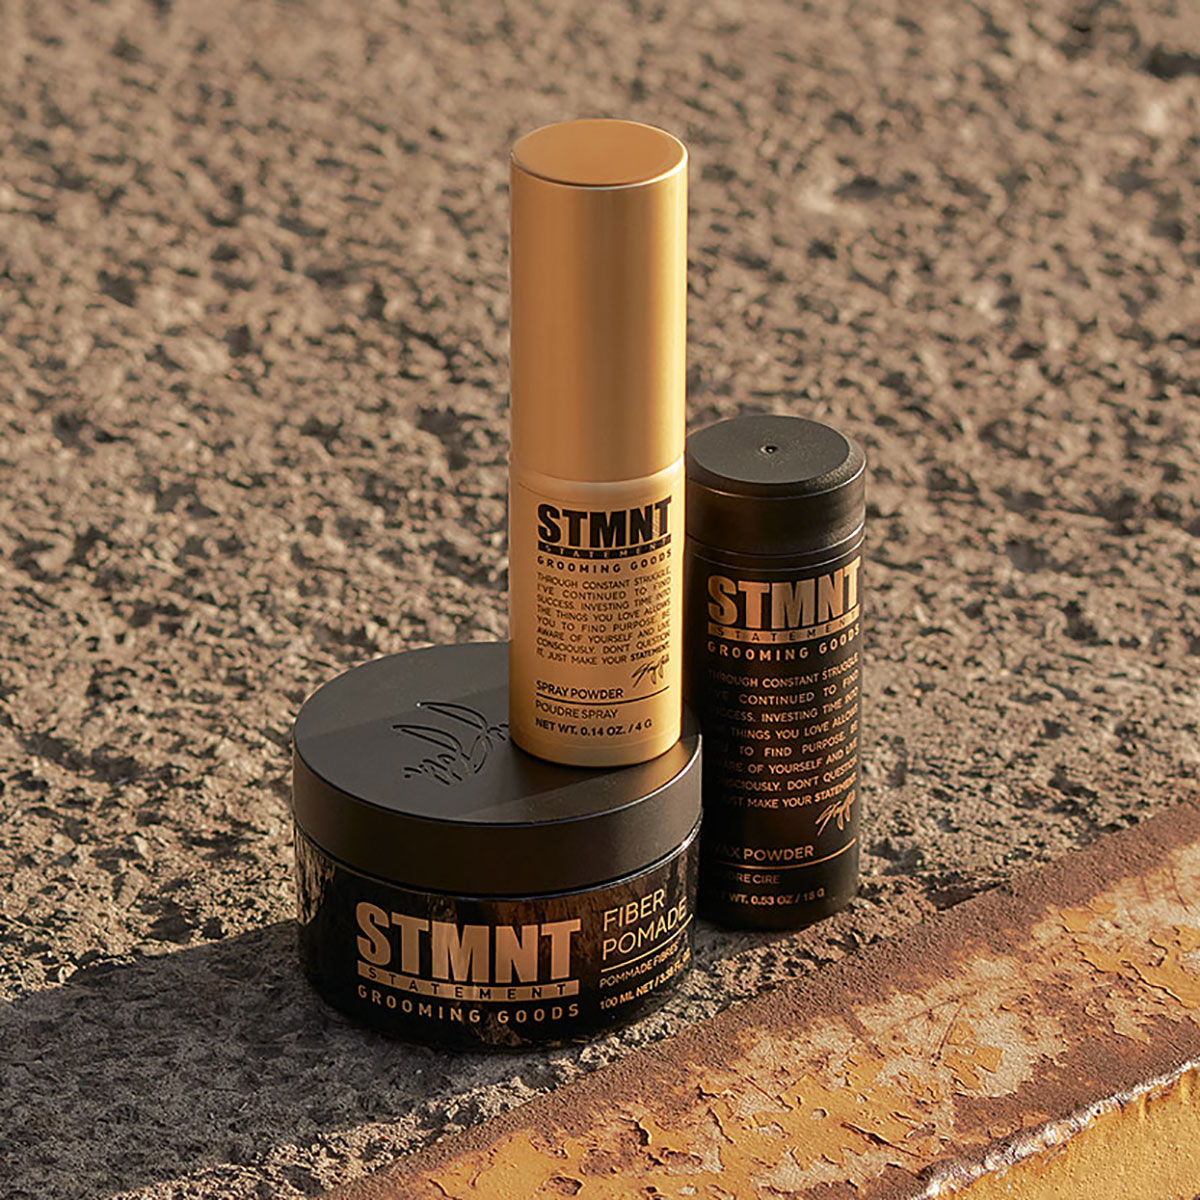 Staygold Stmnt Grooming Product